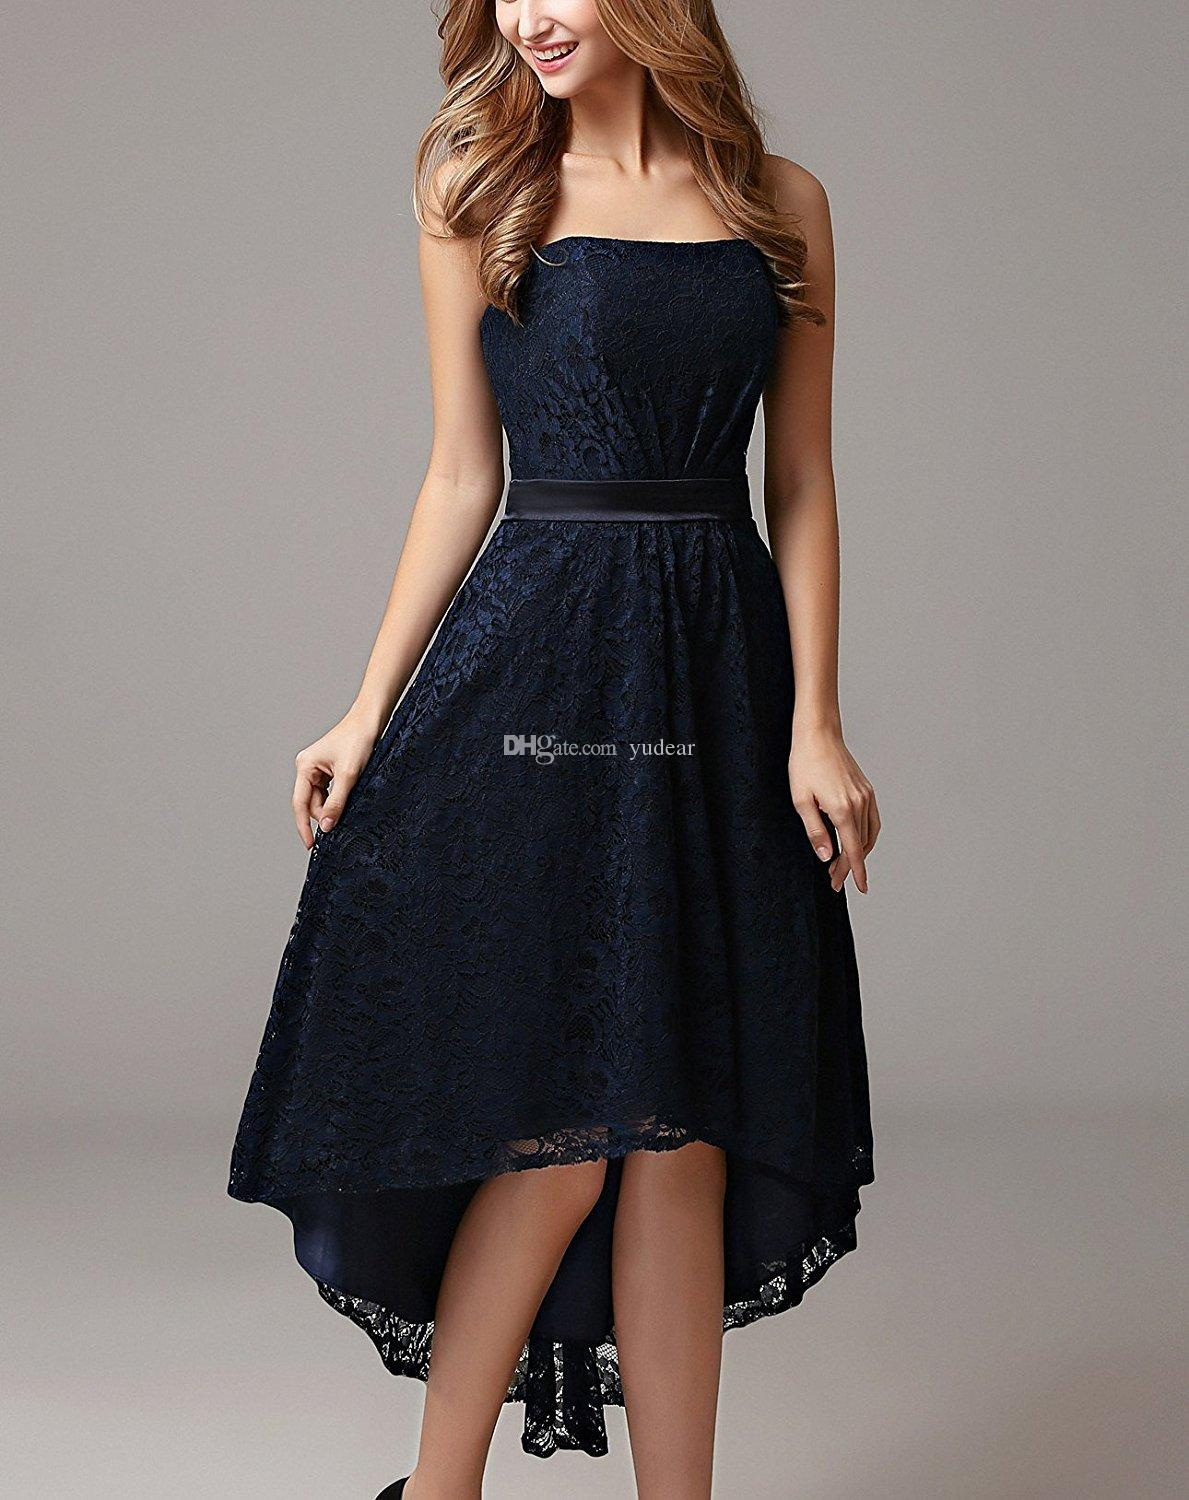 New Design 2019 Strapless Women Prom Dresses Sexy Sleeveless Hi-Lo Cocktail Dress Charming Lace Open Back Waist Ribbon Bridesmaid Dress Chic